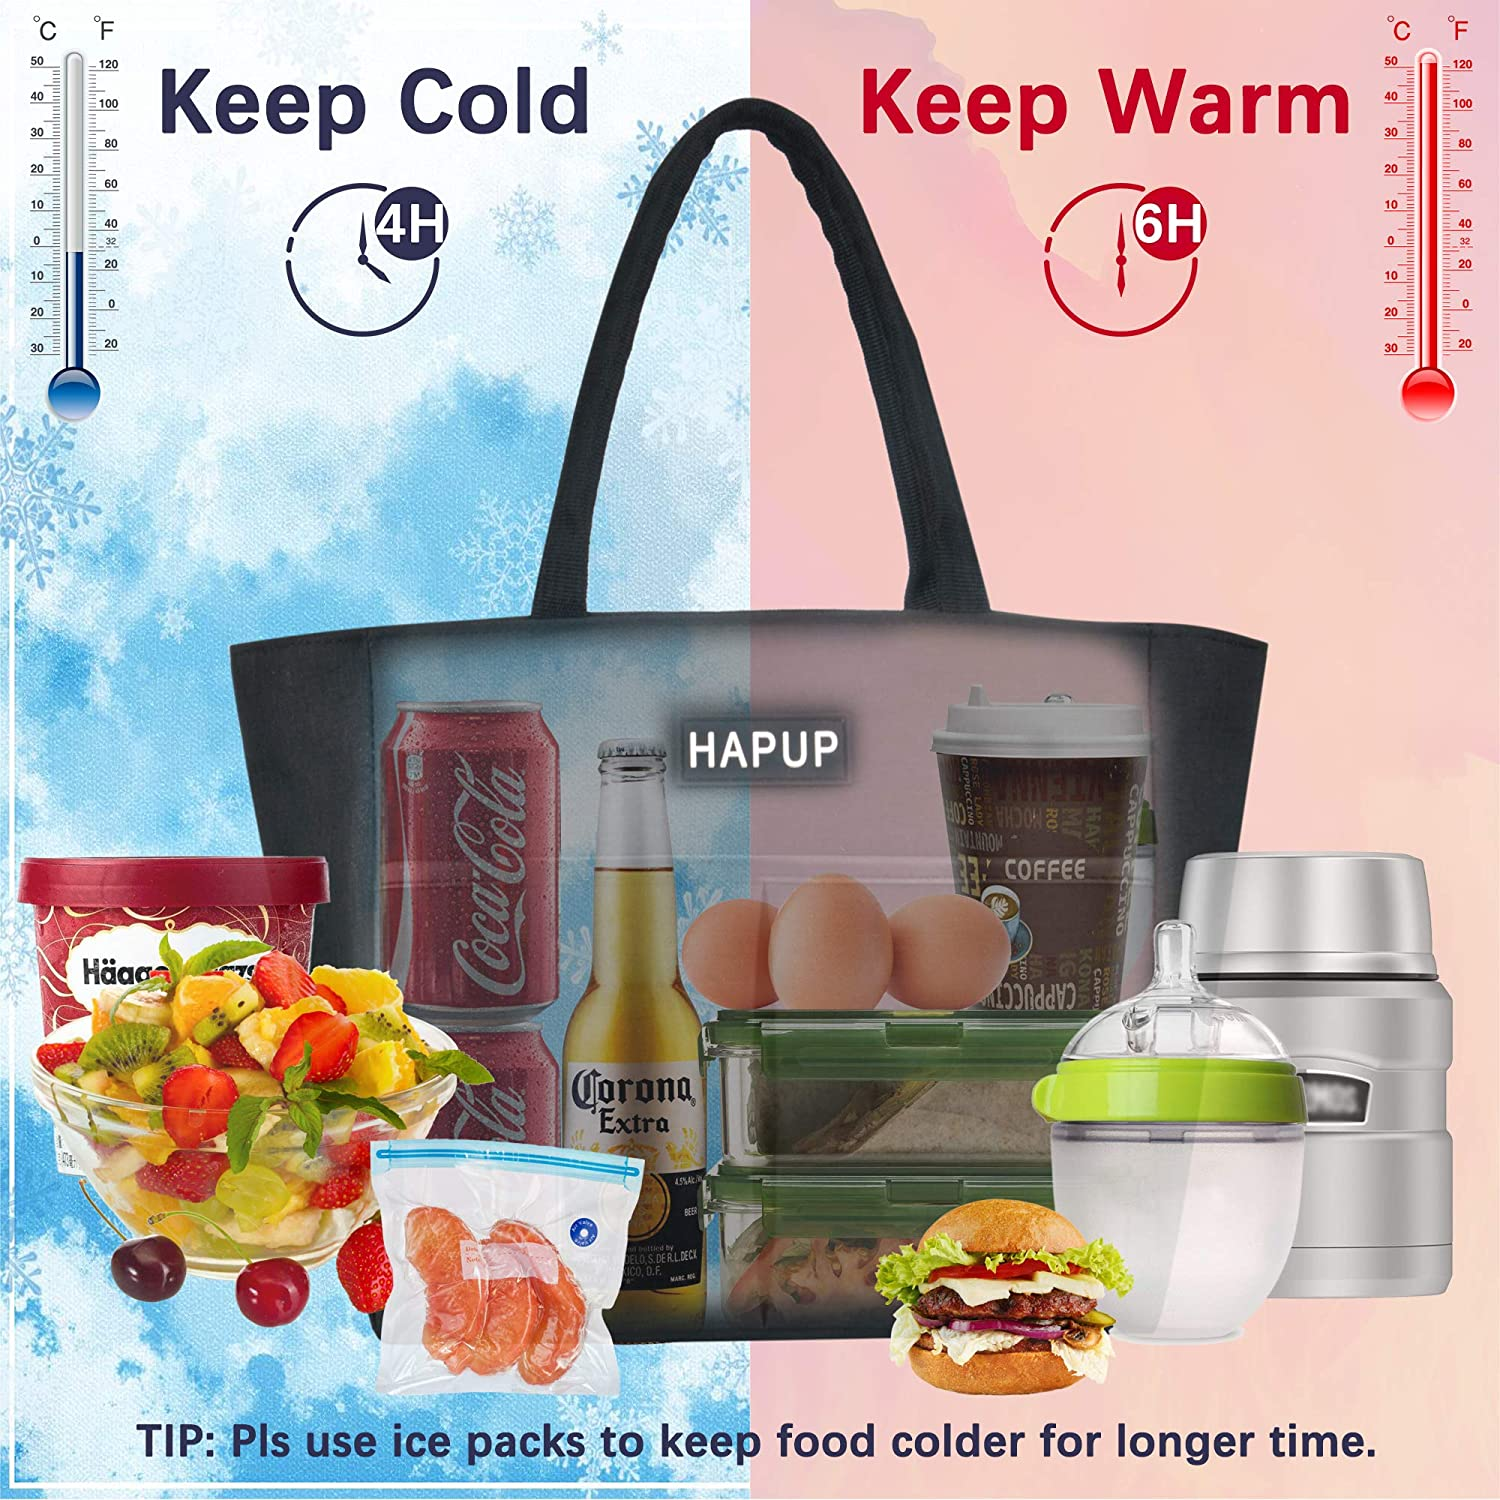 Lunch Bag Insulated Lunch Bags Adult Lunch Box Large Thermal Lunchbox Tote Bag Set with Multi Zipper Pockets and 2 Reusable Sandwich Bags Washable for Women Men Work College Travel Picnic Black